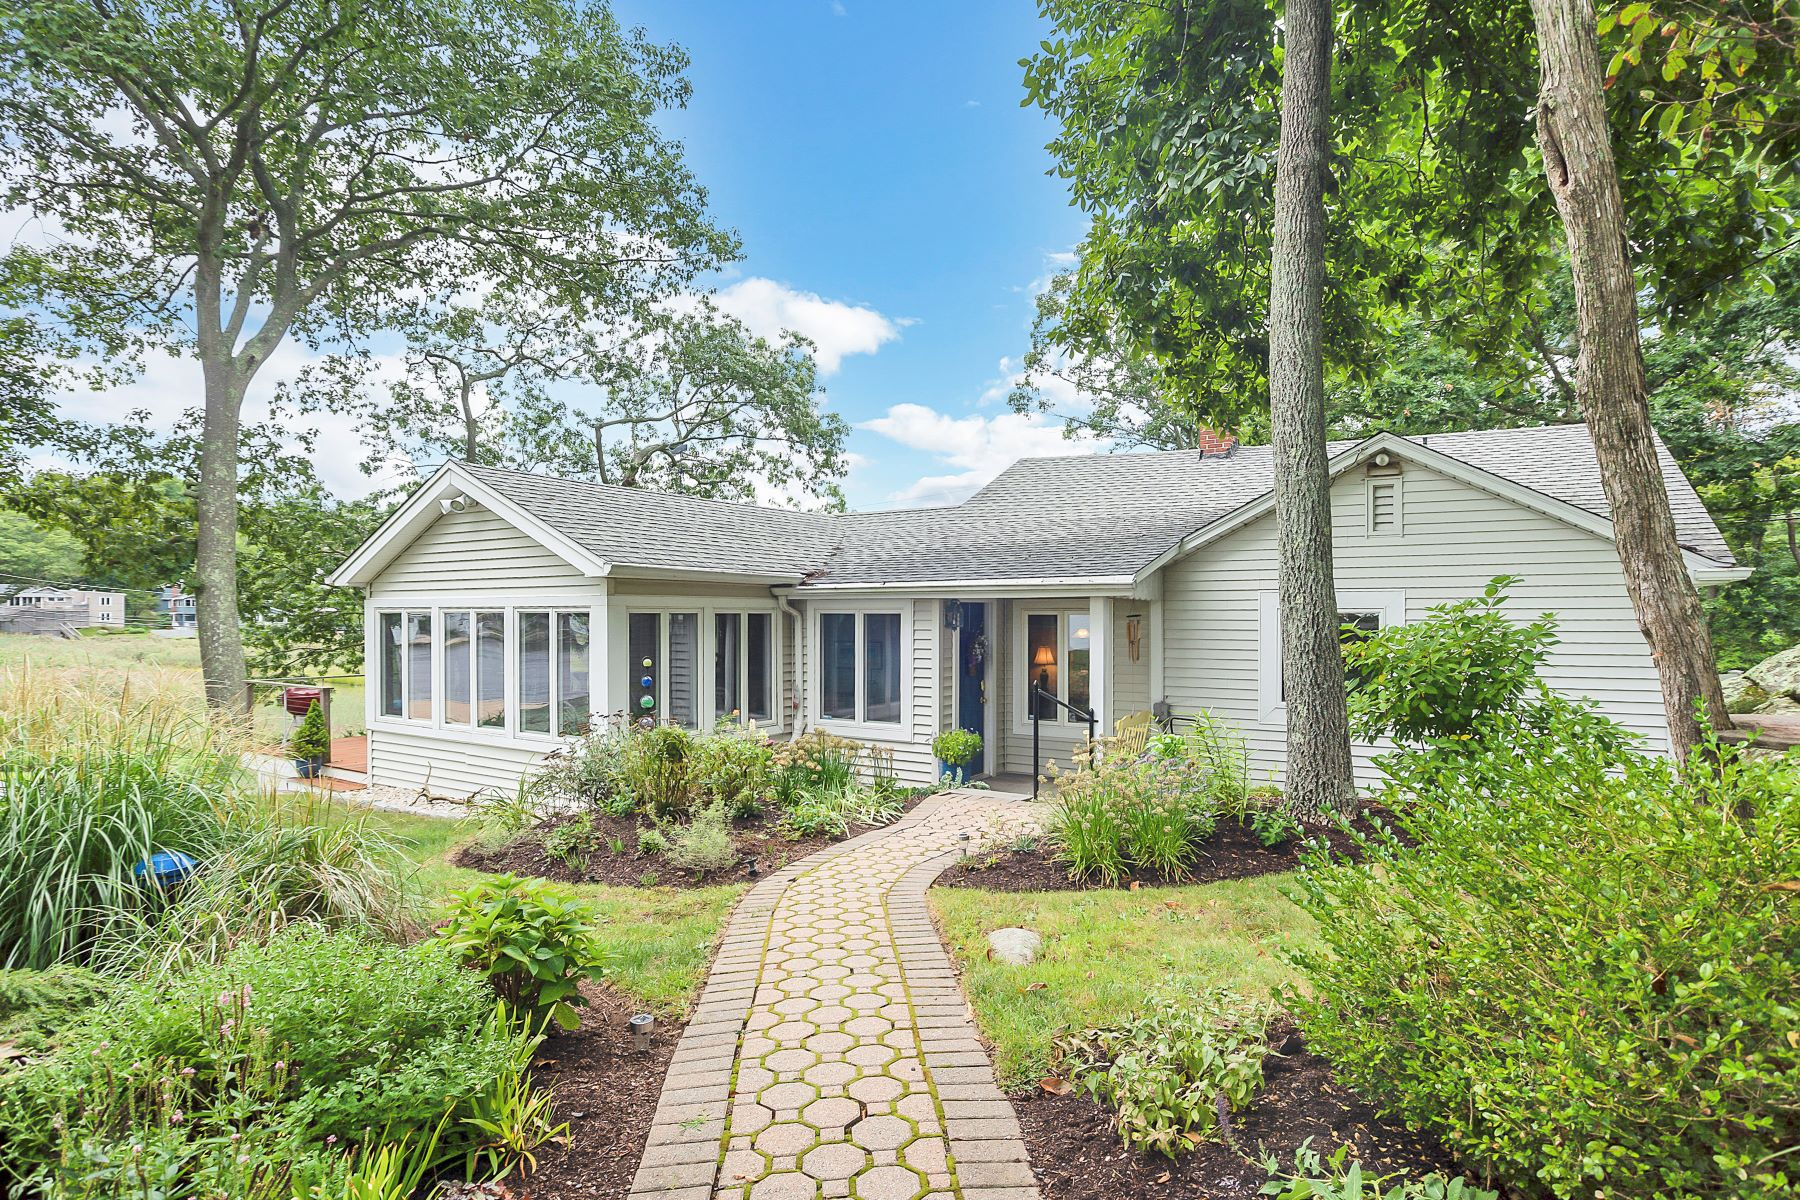 Single Family Home for Sale at 595 Mulberry Point Road 595 Mulberry Point Road Guilford, Connecticut 06437 United States